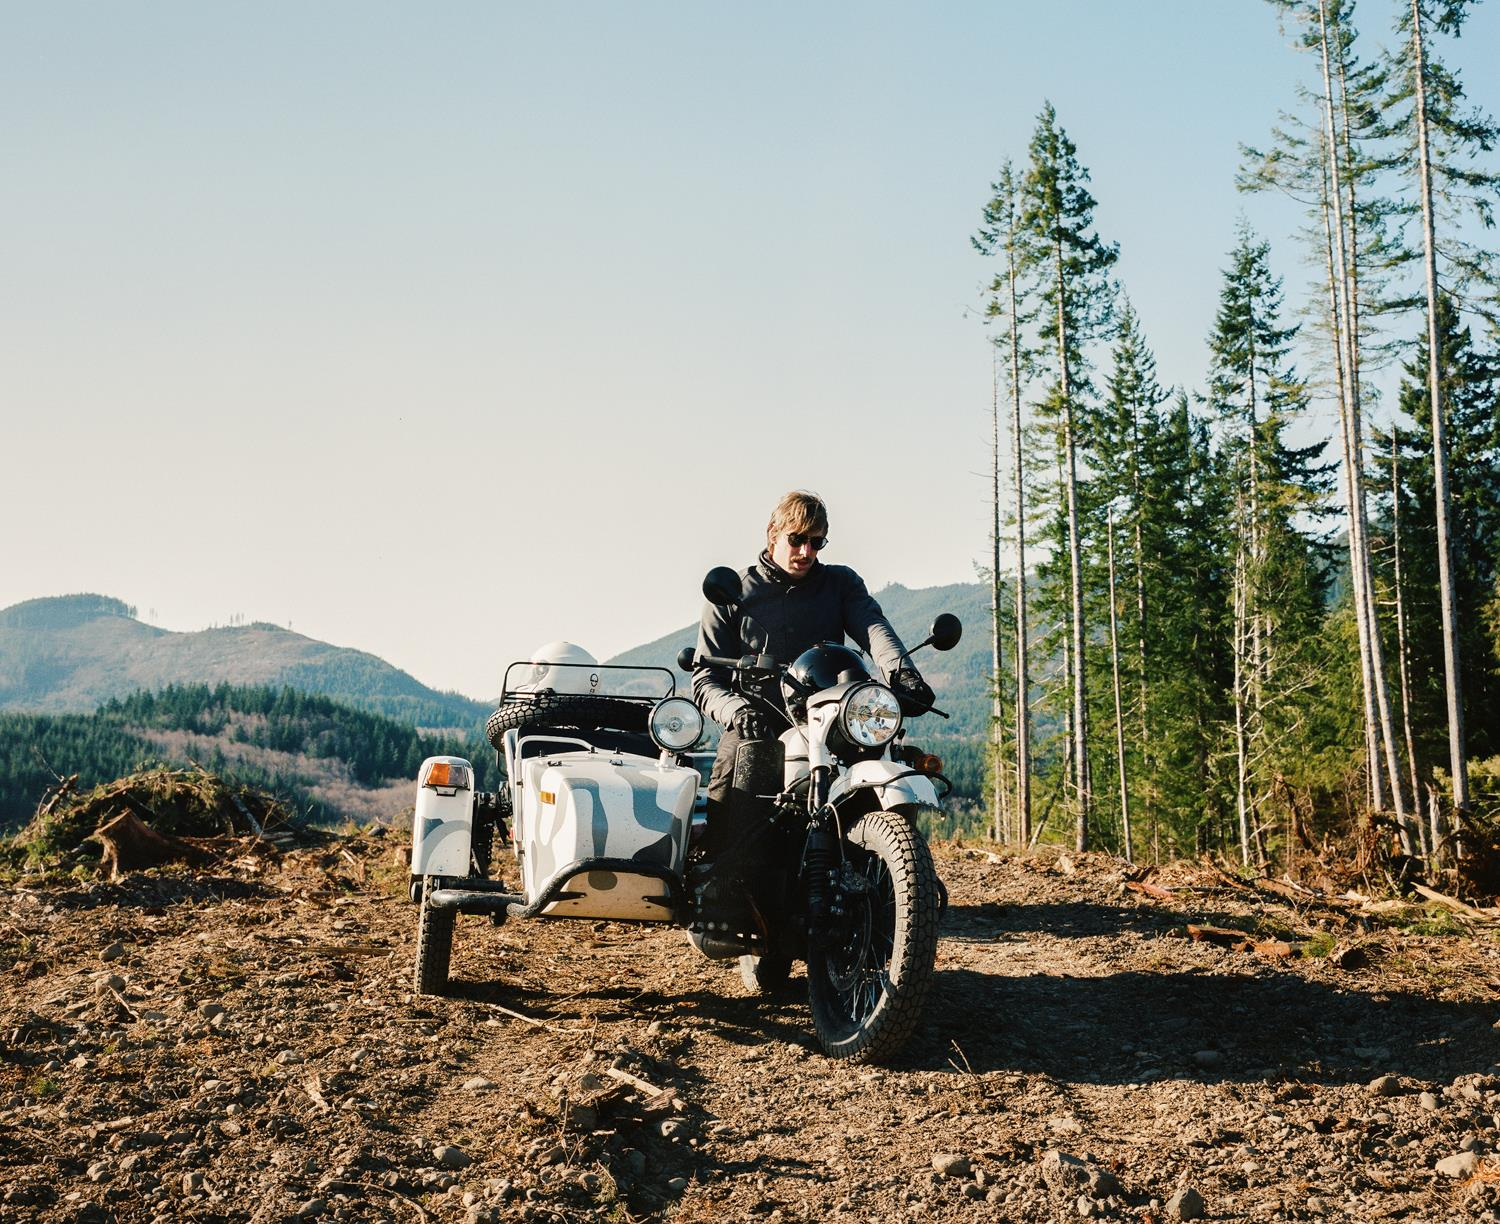 16Gear_Ural_04050009-LR-Copy